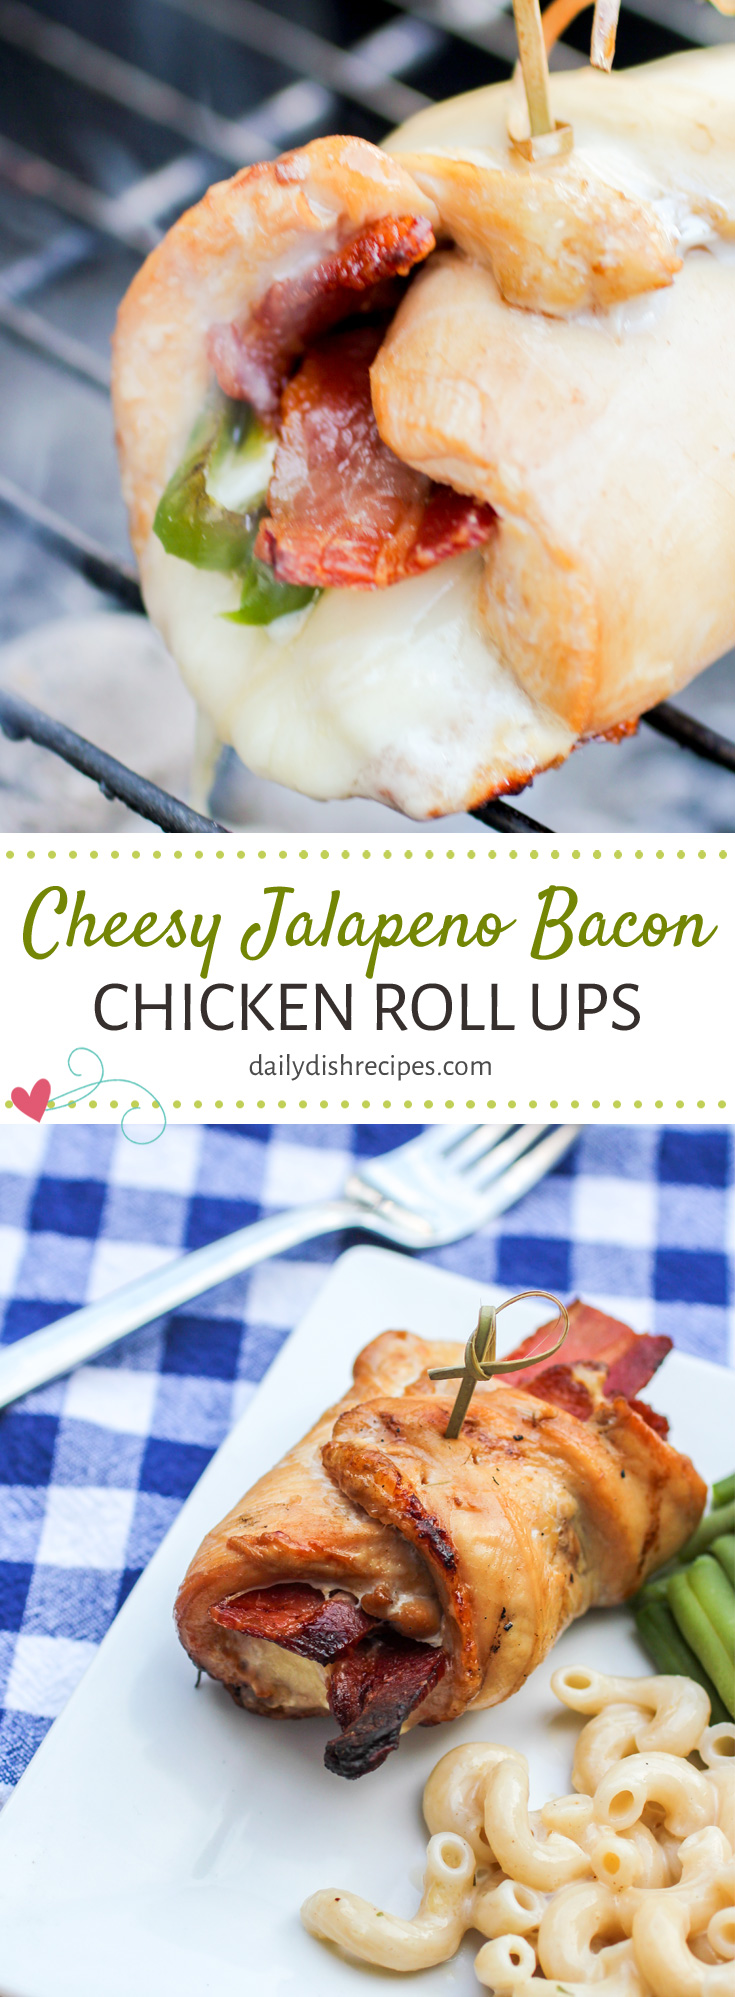 Looking for an easy dinner idea that tastes fantastic and that your whole family will love (pull the jalapenos for kiddos and those that don't like them). These Cheesy Jalapeno Bacon Chicken Roll Ups are INCREDIBLE. Dripping with melted cheese, crisp bacon and however much heat you want to pack into them with the Jalapenos, they are are a popular choice! Bake in the oven or throw on the grill for an easy weeknight dinner idea or serve to company at your next dinner party!